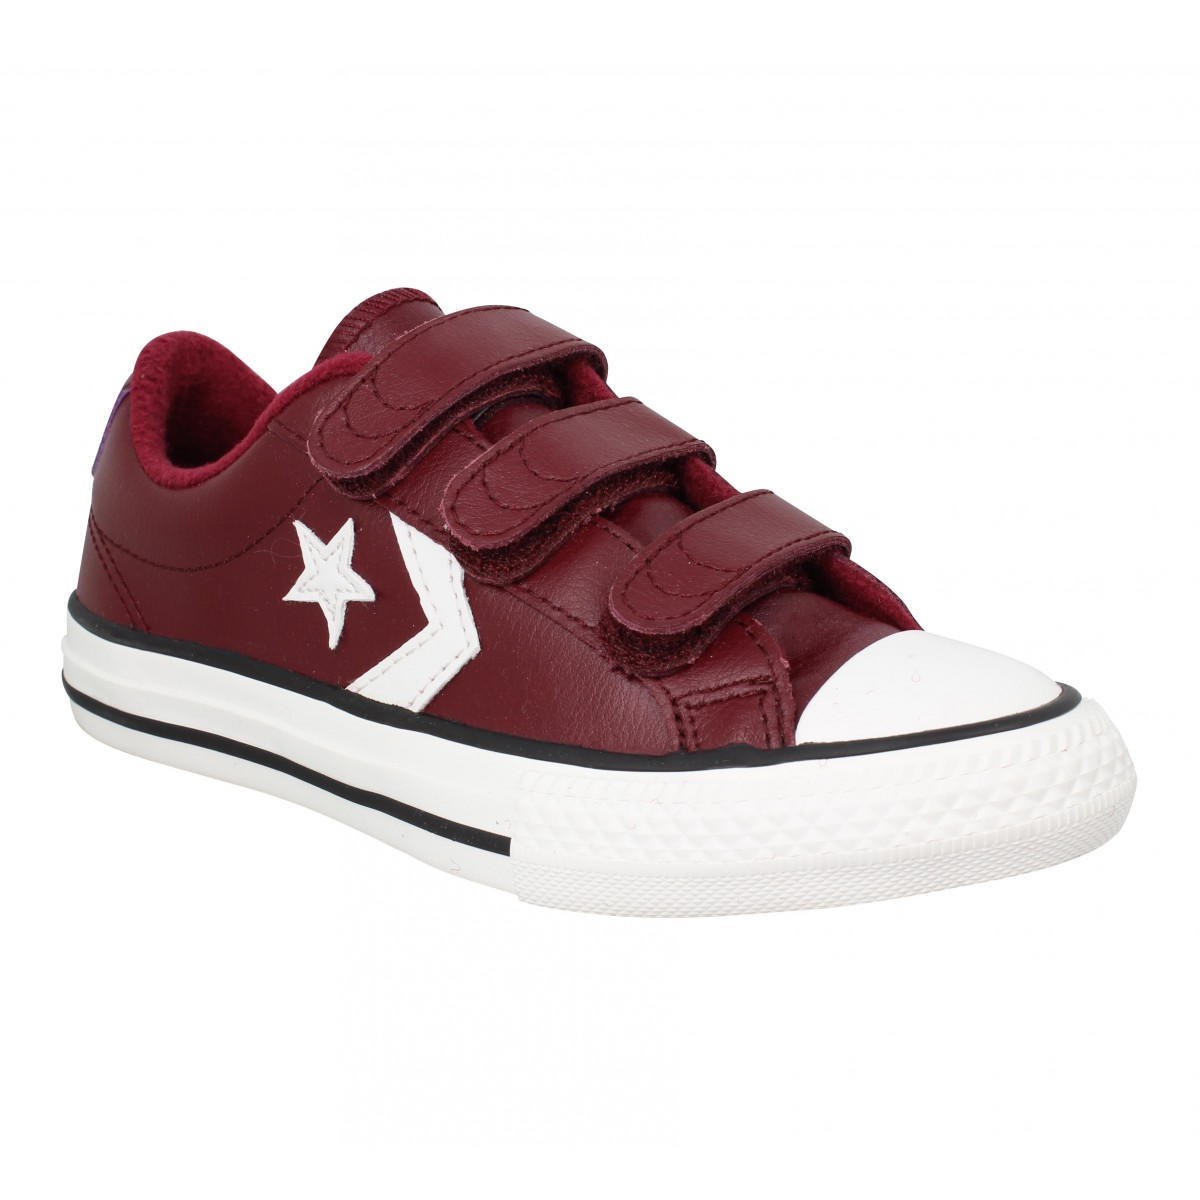 Baskets CONVERSE Star Player 3V OX cuir Enfant Bordeaux